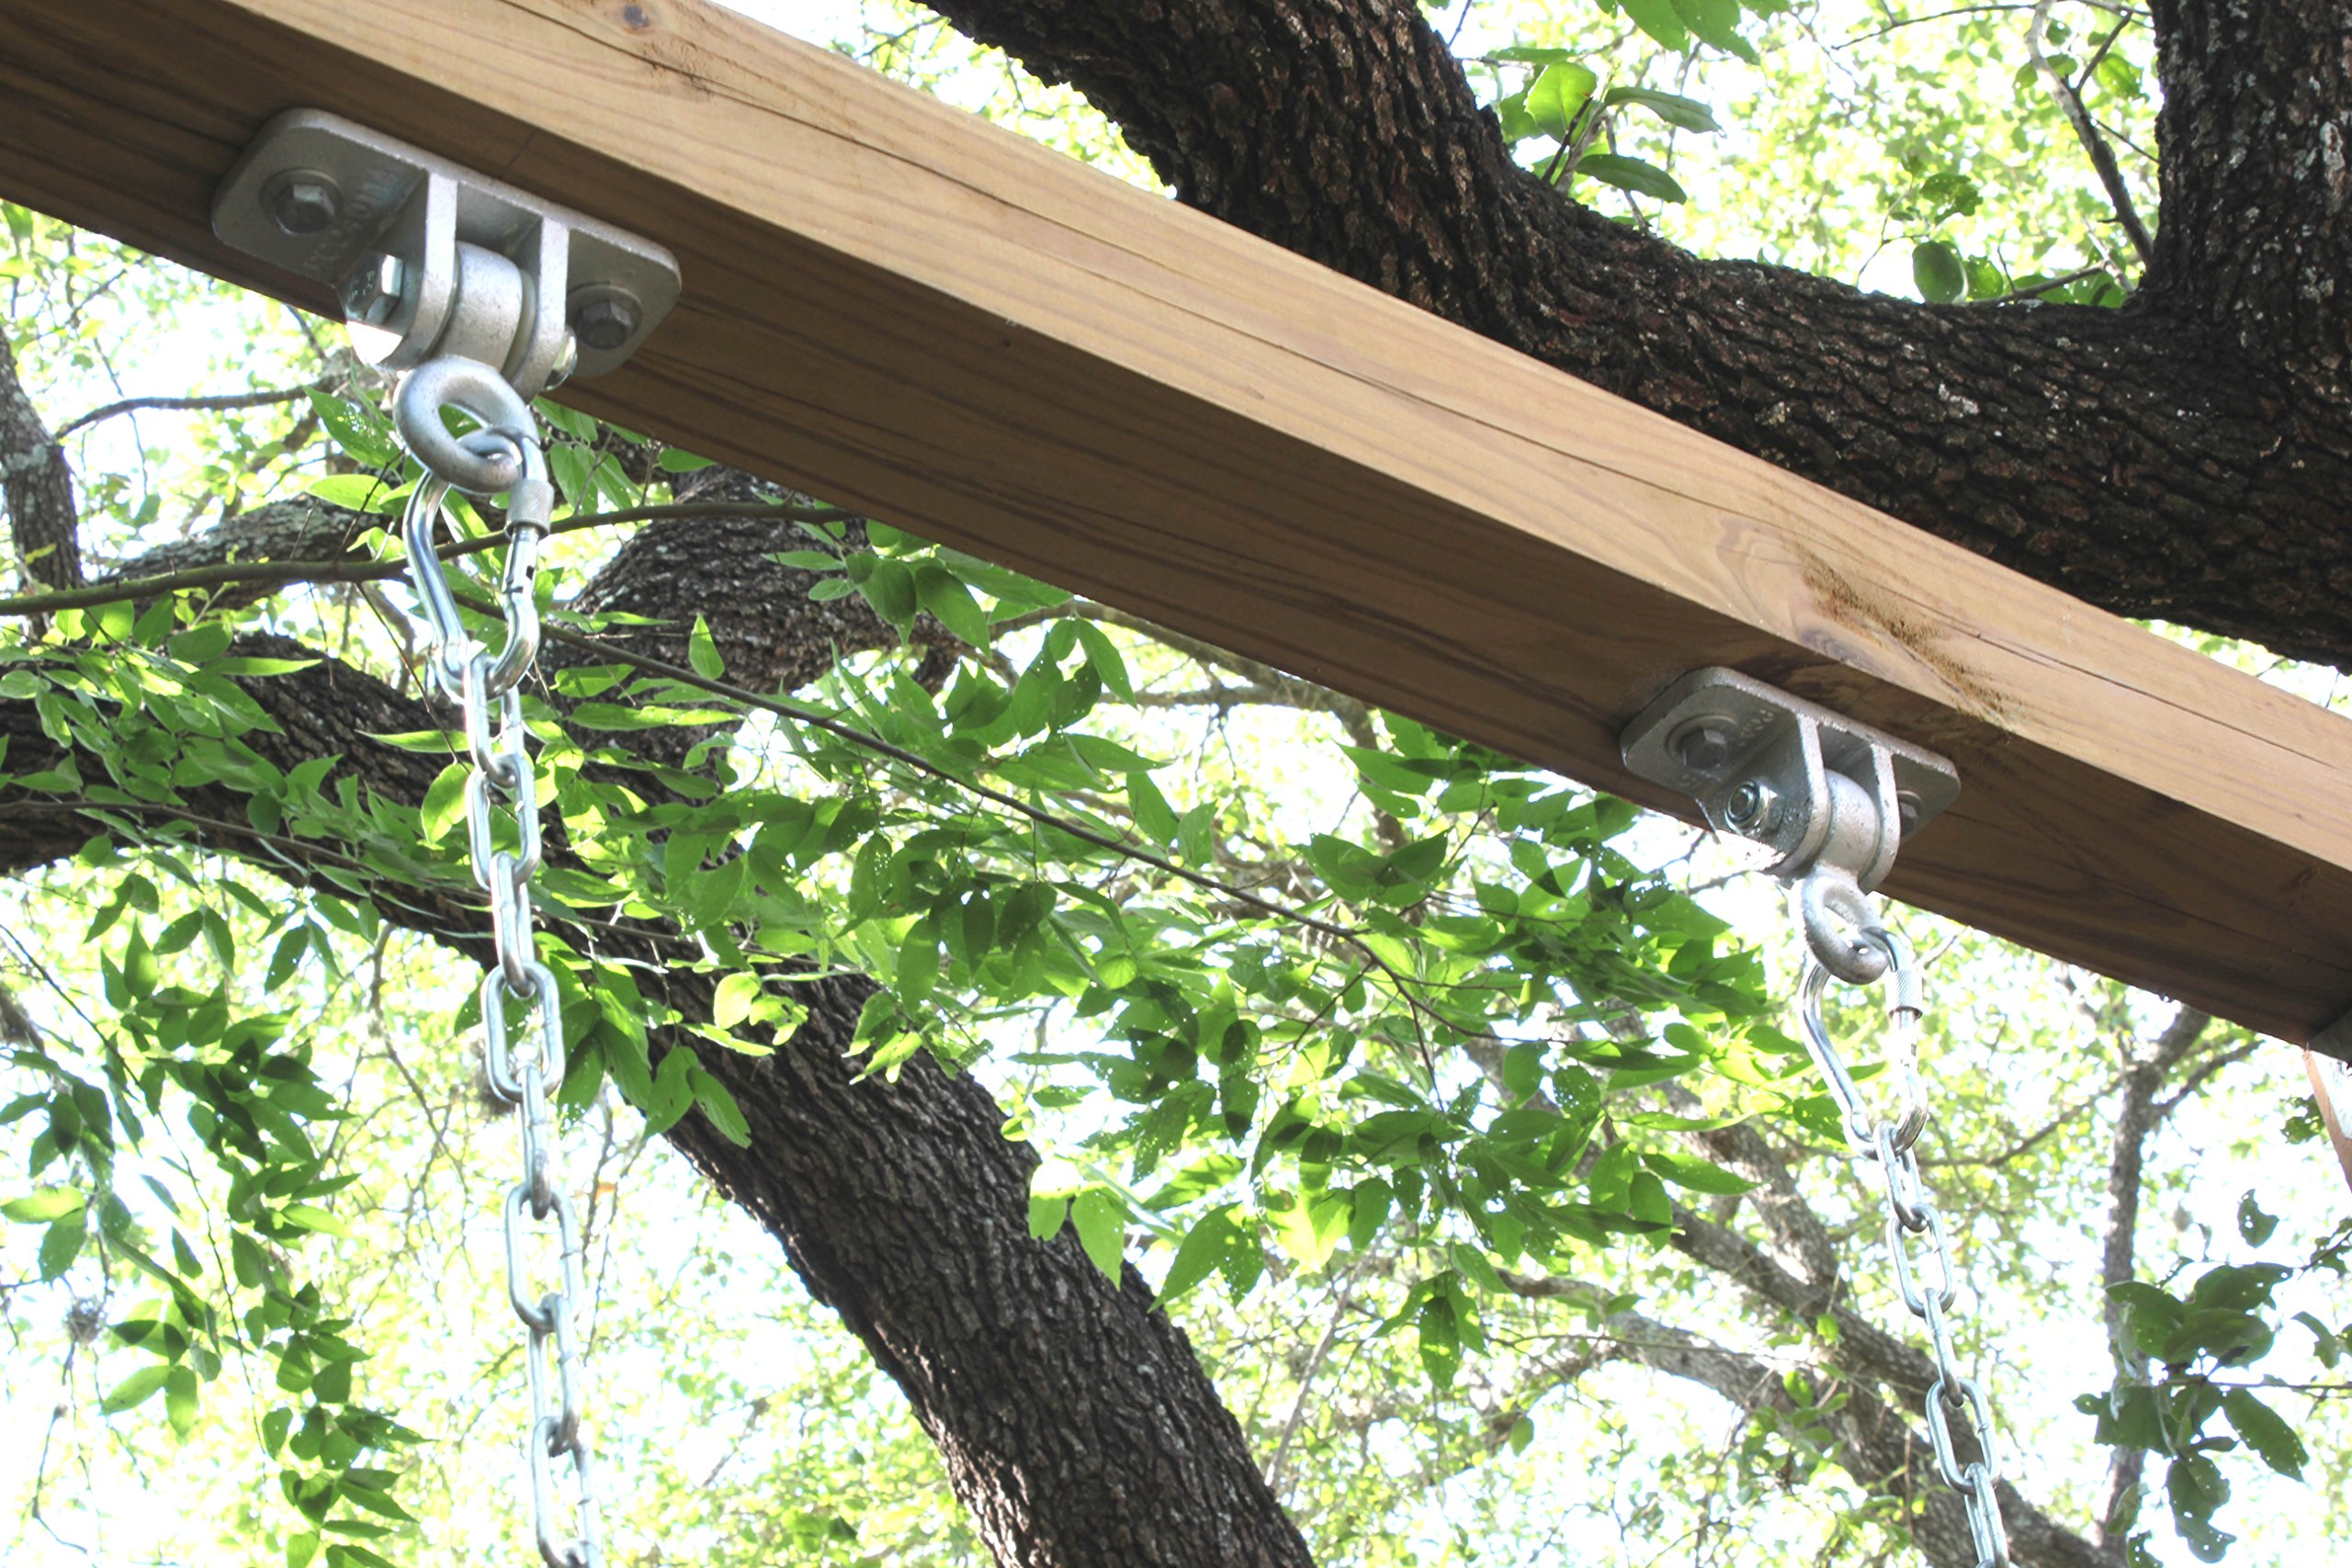 Heavy Duty Swing Hangers For Playground Yoga Porch Seat Hanging Locking Hook